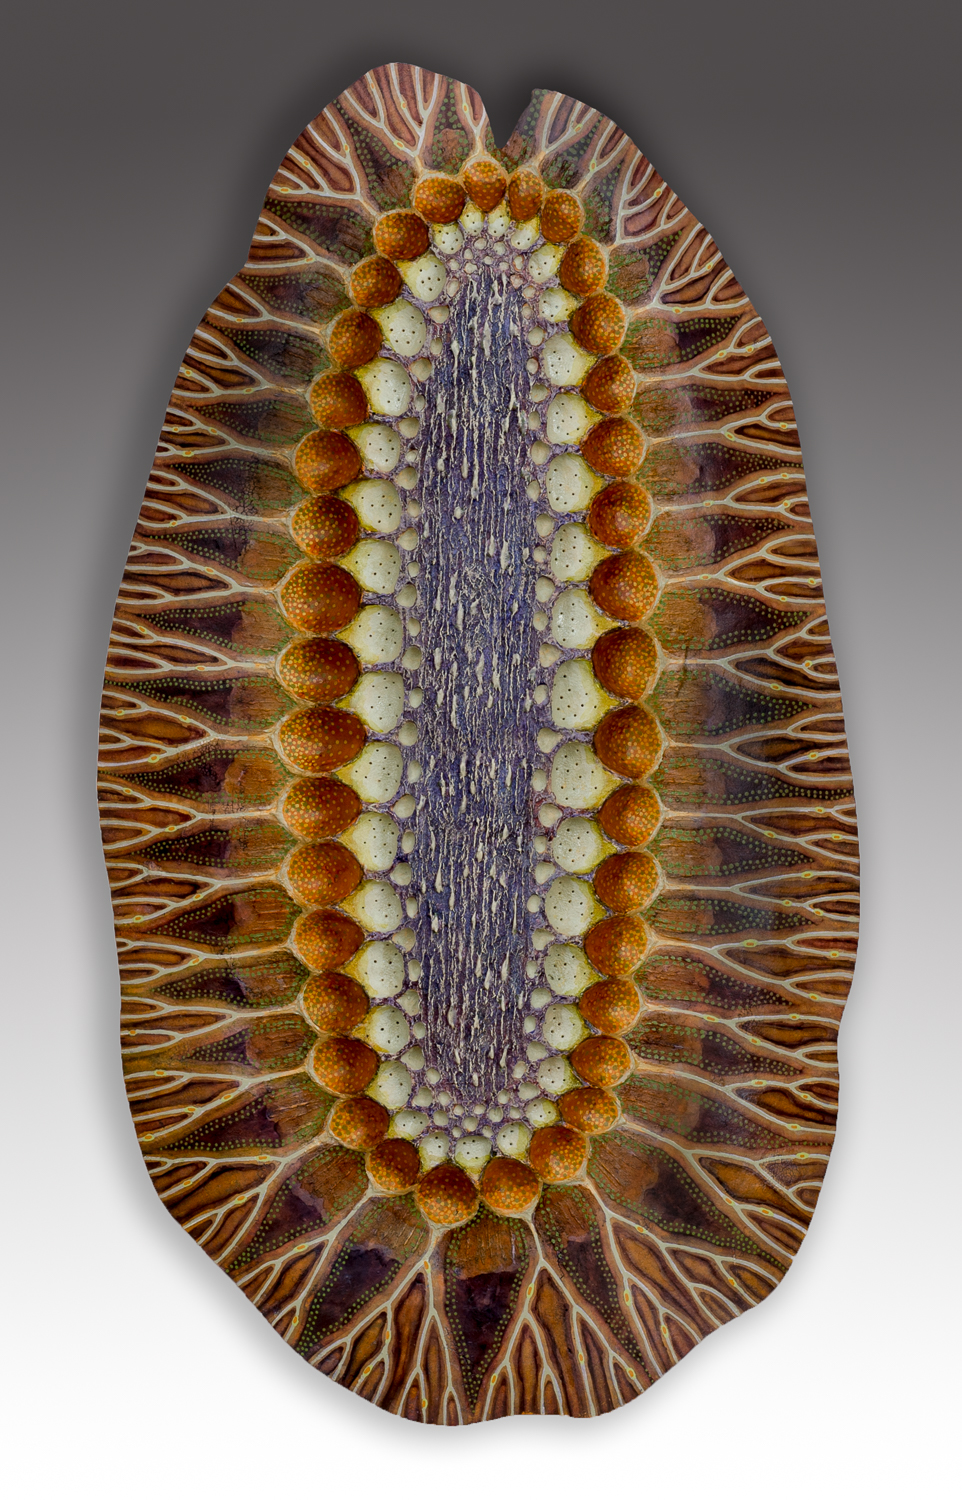 Diatom 3, 15 x 8.5 x 3 inches, sold